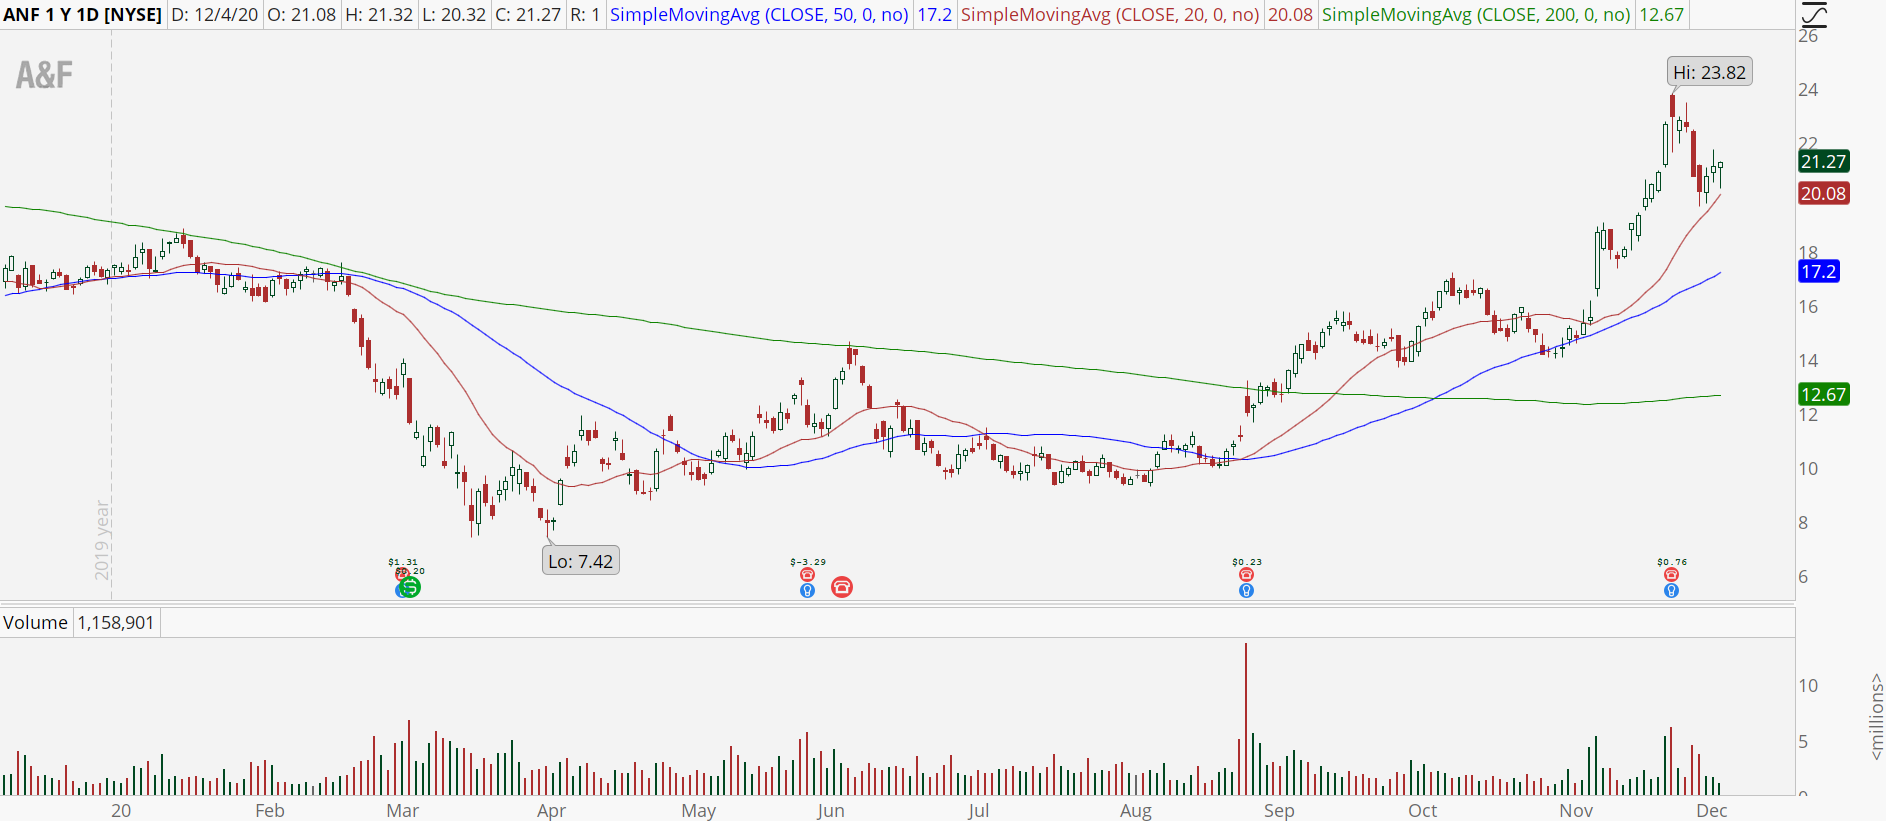 Abercrombie & Fitch (ANF) chart showing bull retracement